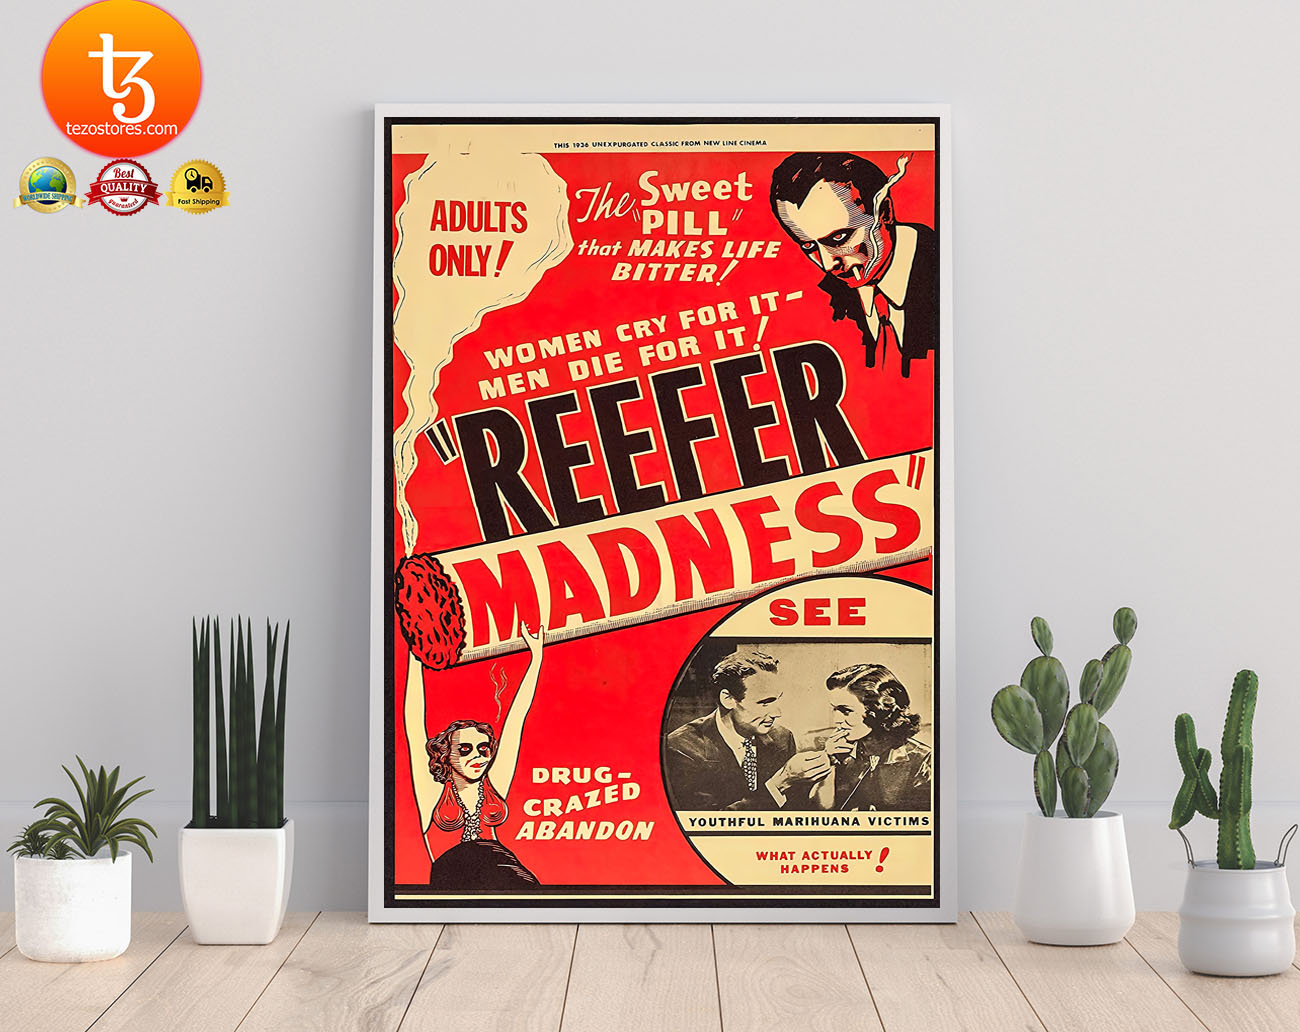 Reefer madness the movie poster 21